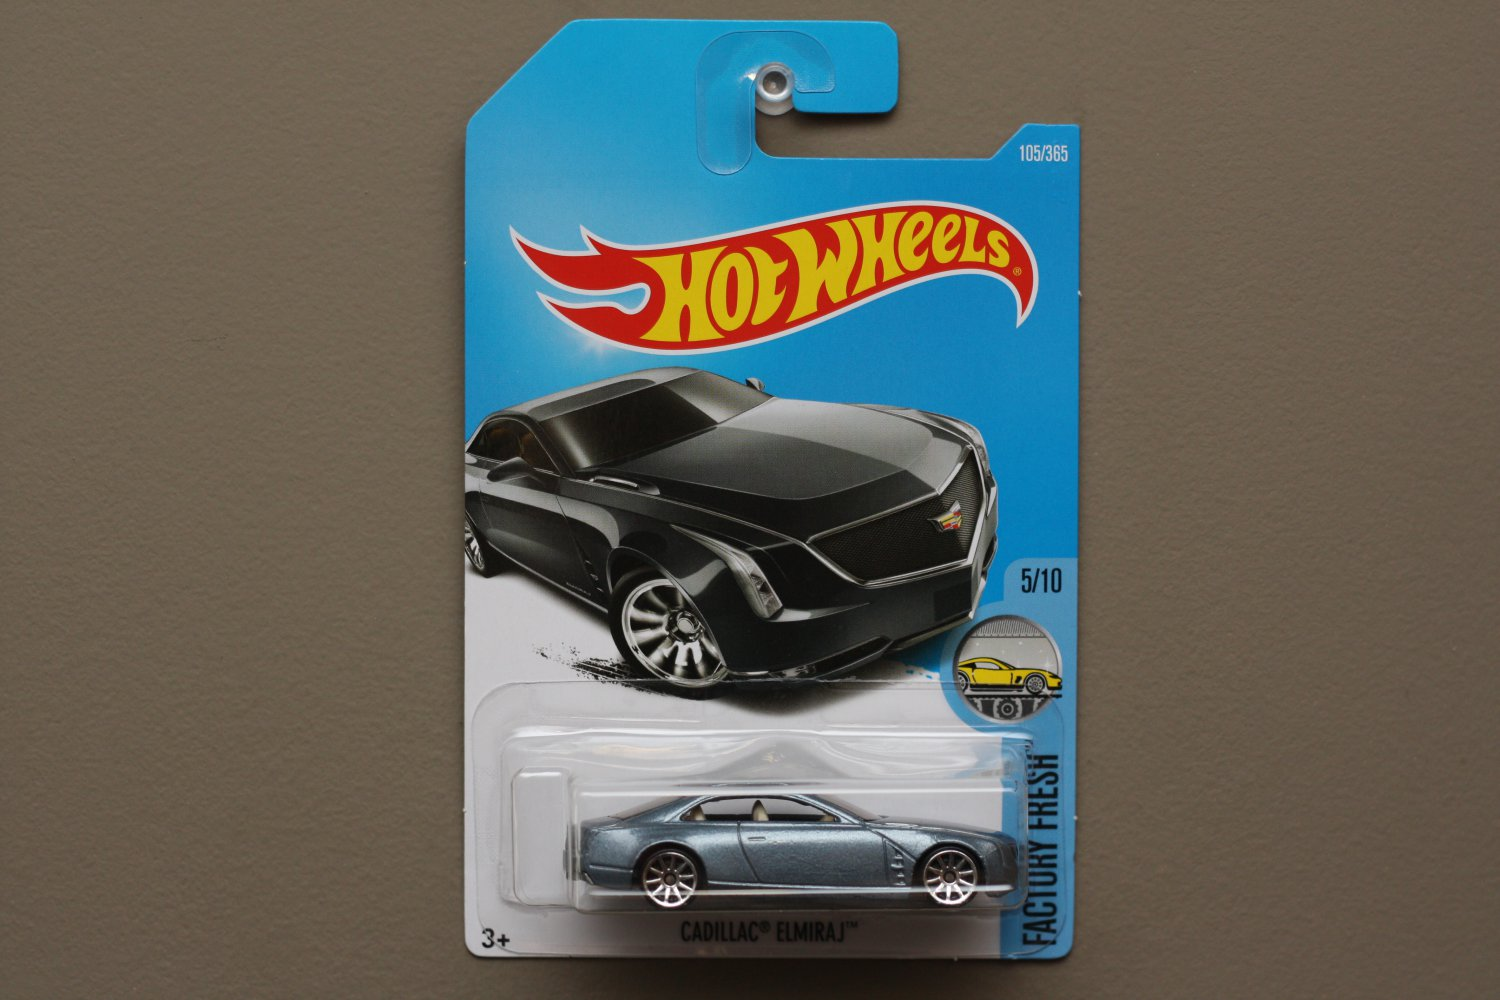 Cadillac Elmiraj Price In Usa >> Hot Wheels 2017 Factory Fresh Cadillac Elmiraj (grey)